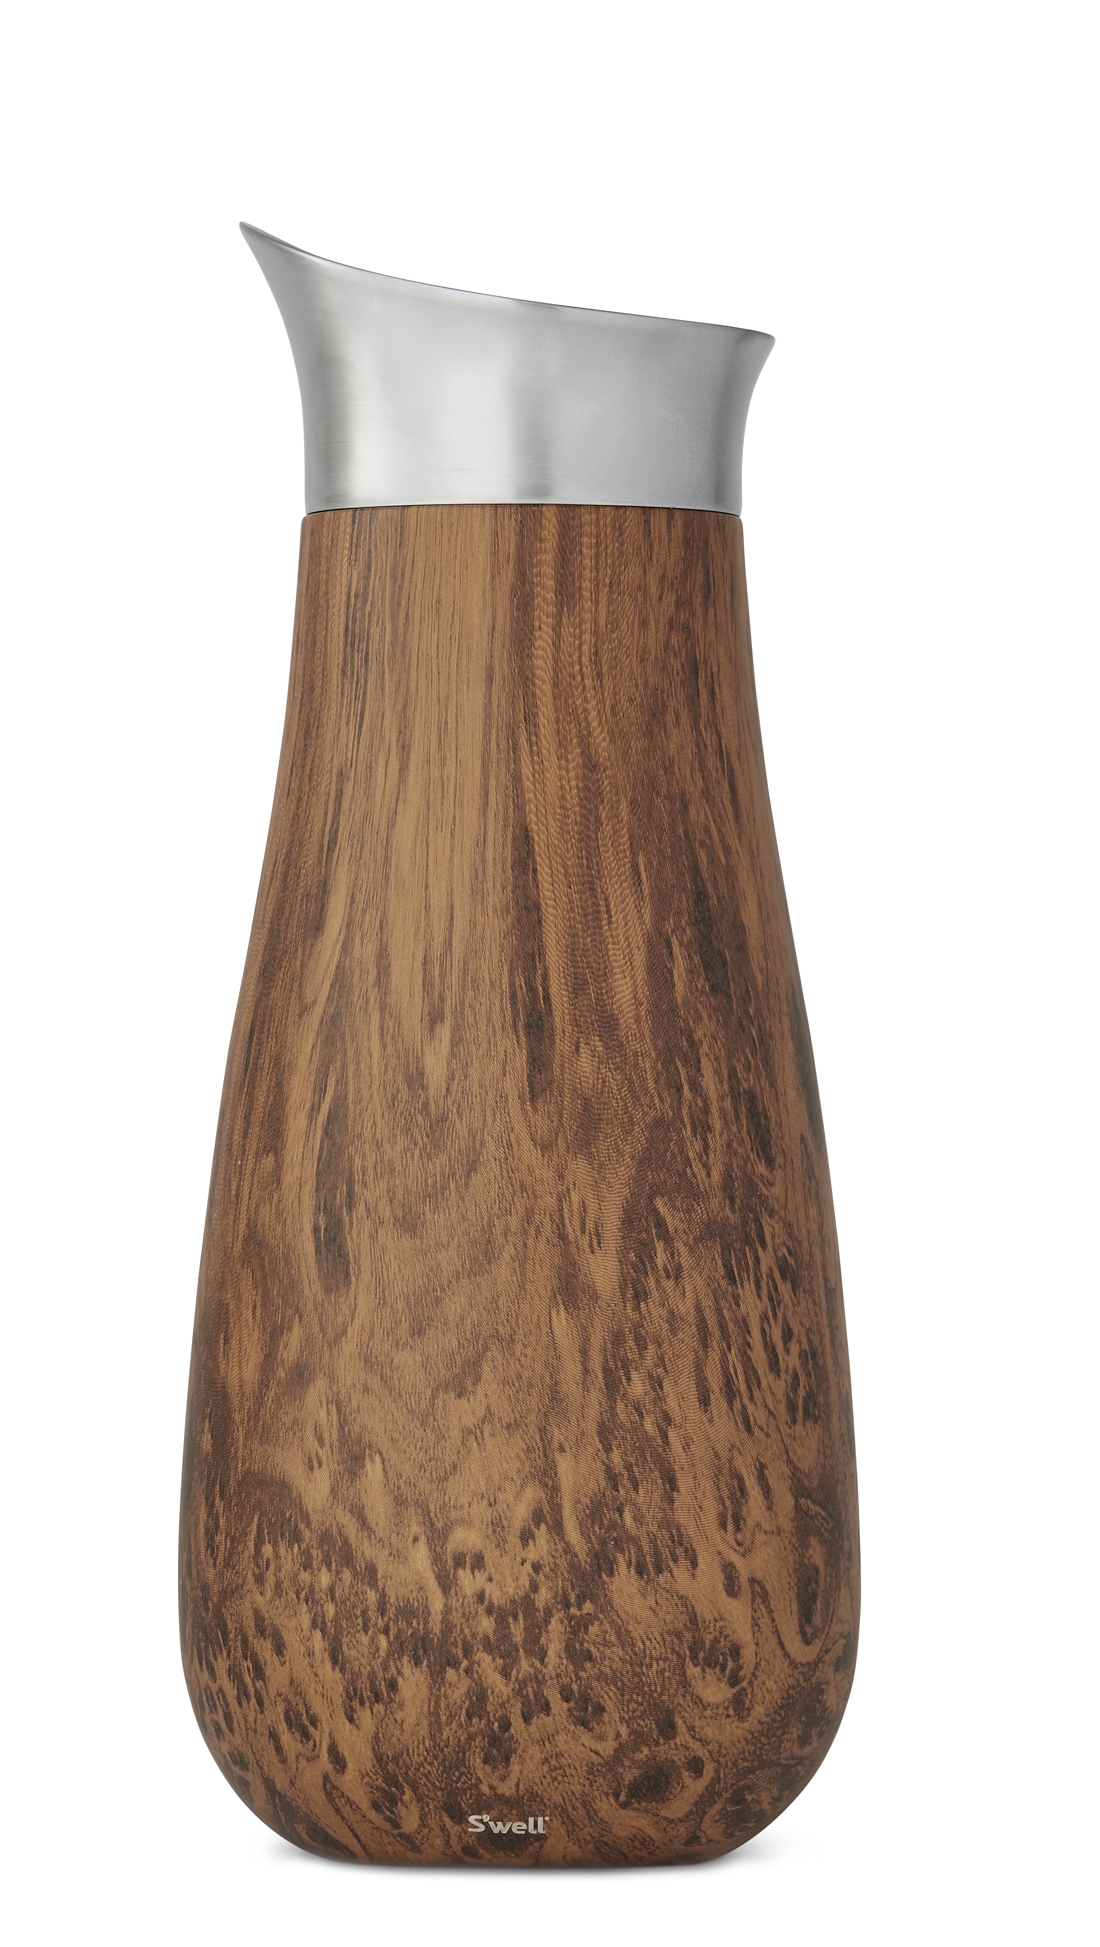 A Carafe That Is A Blind Glass teakwood carafe